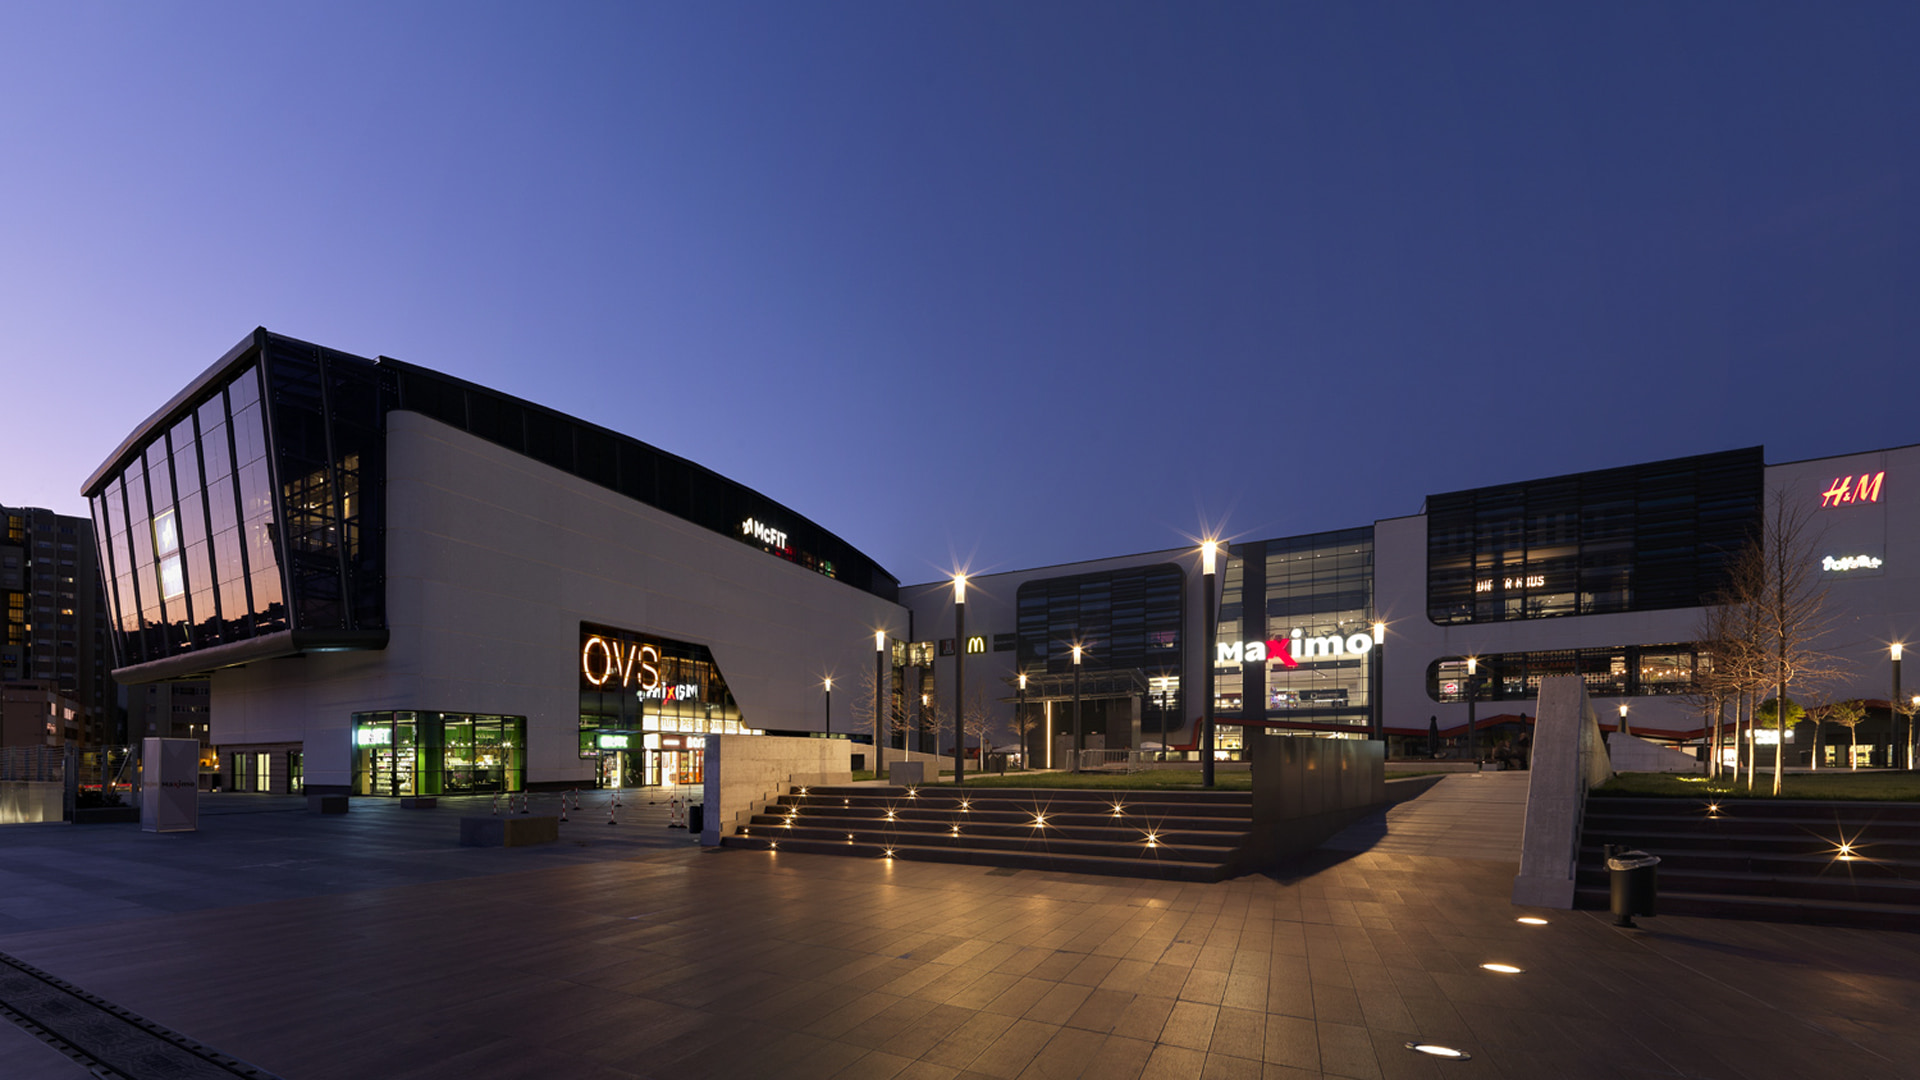 MAXIMO SHOPPING CENTER AMONG THE SHORTLISTED PROJECTS OF THE PLAN AWARD 2021